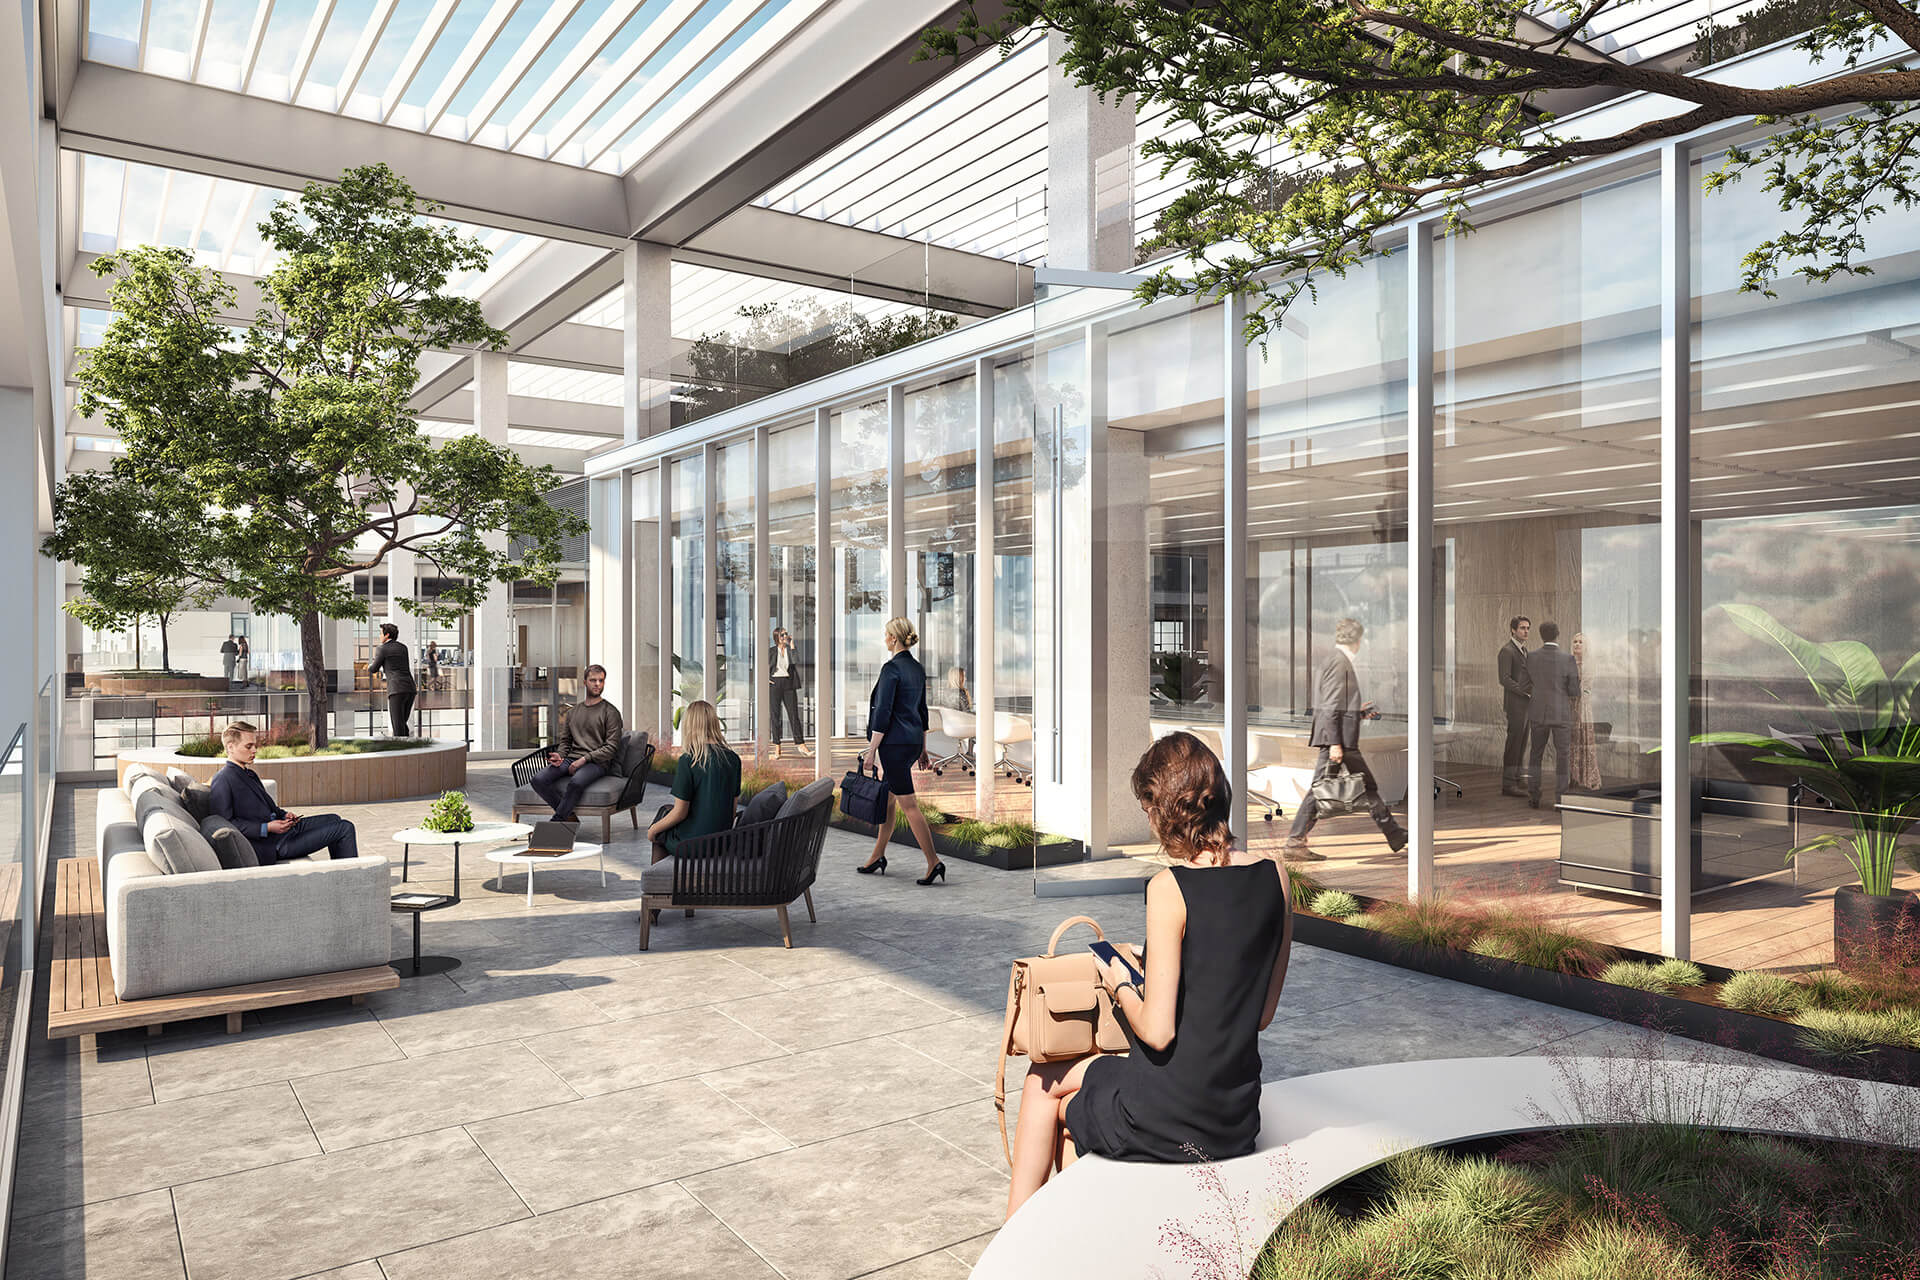 The spaces allow for maximum daylight to reduce the use of artificial heating and cooling | Icône office complex | Foster + Partners | STIRworld